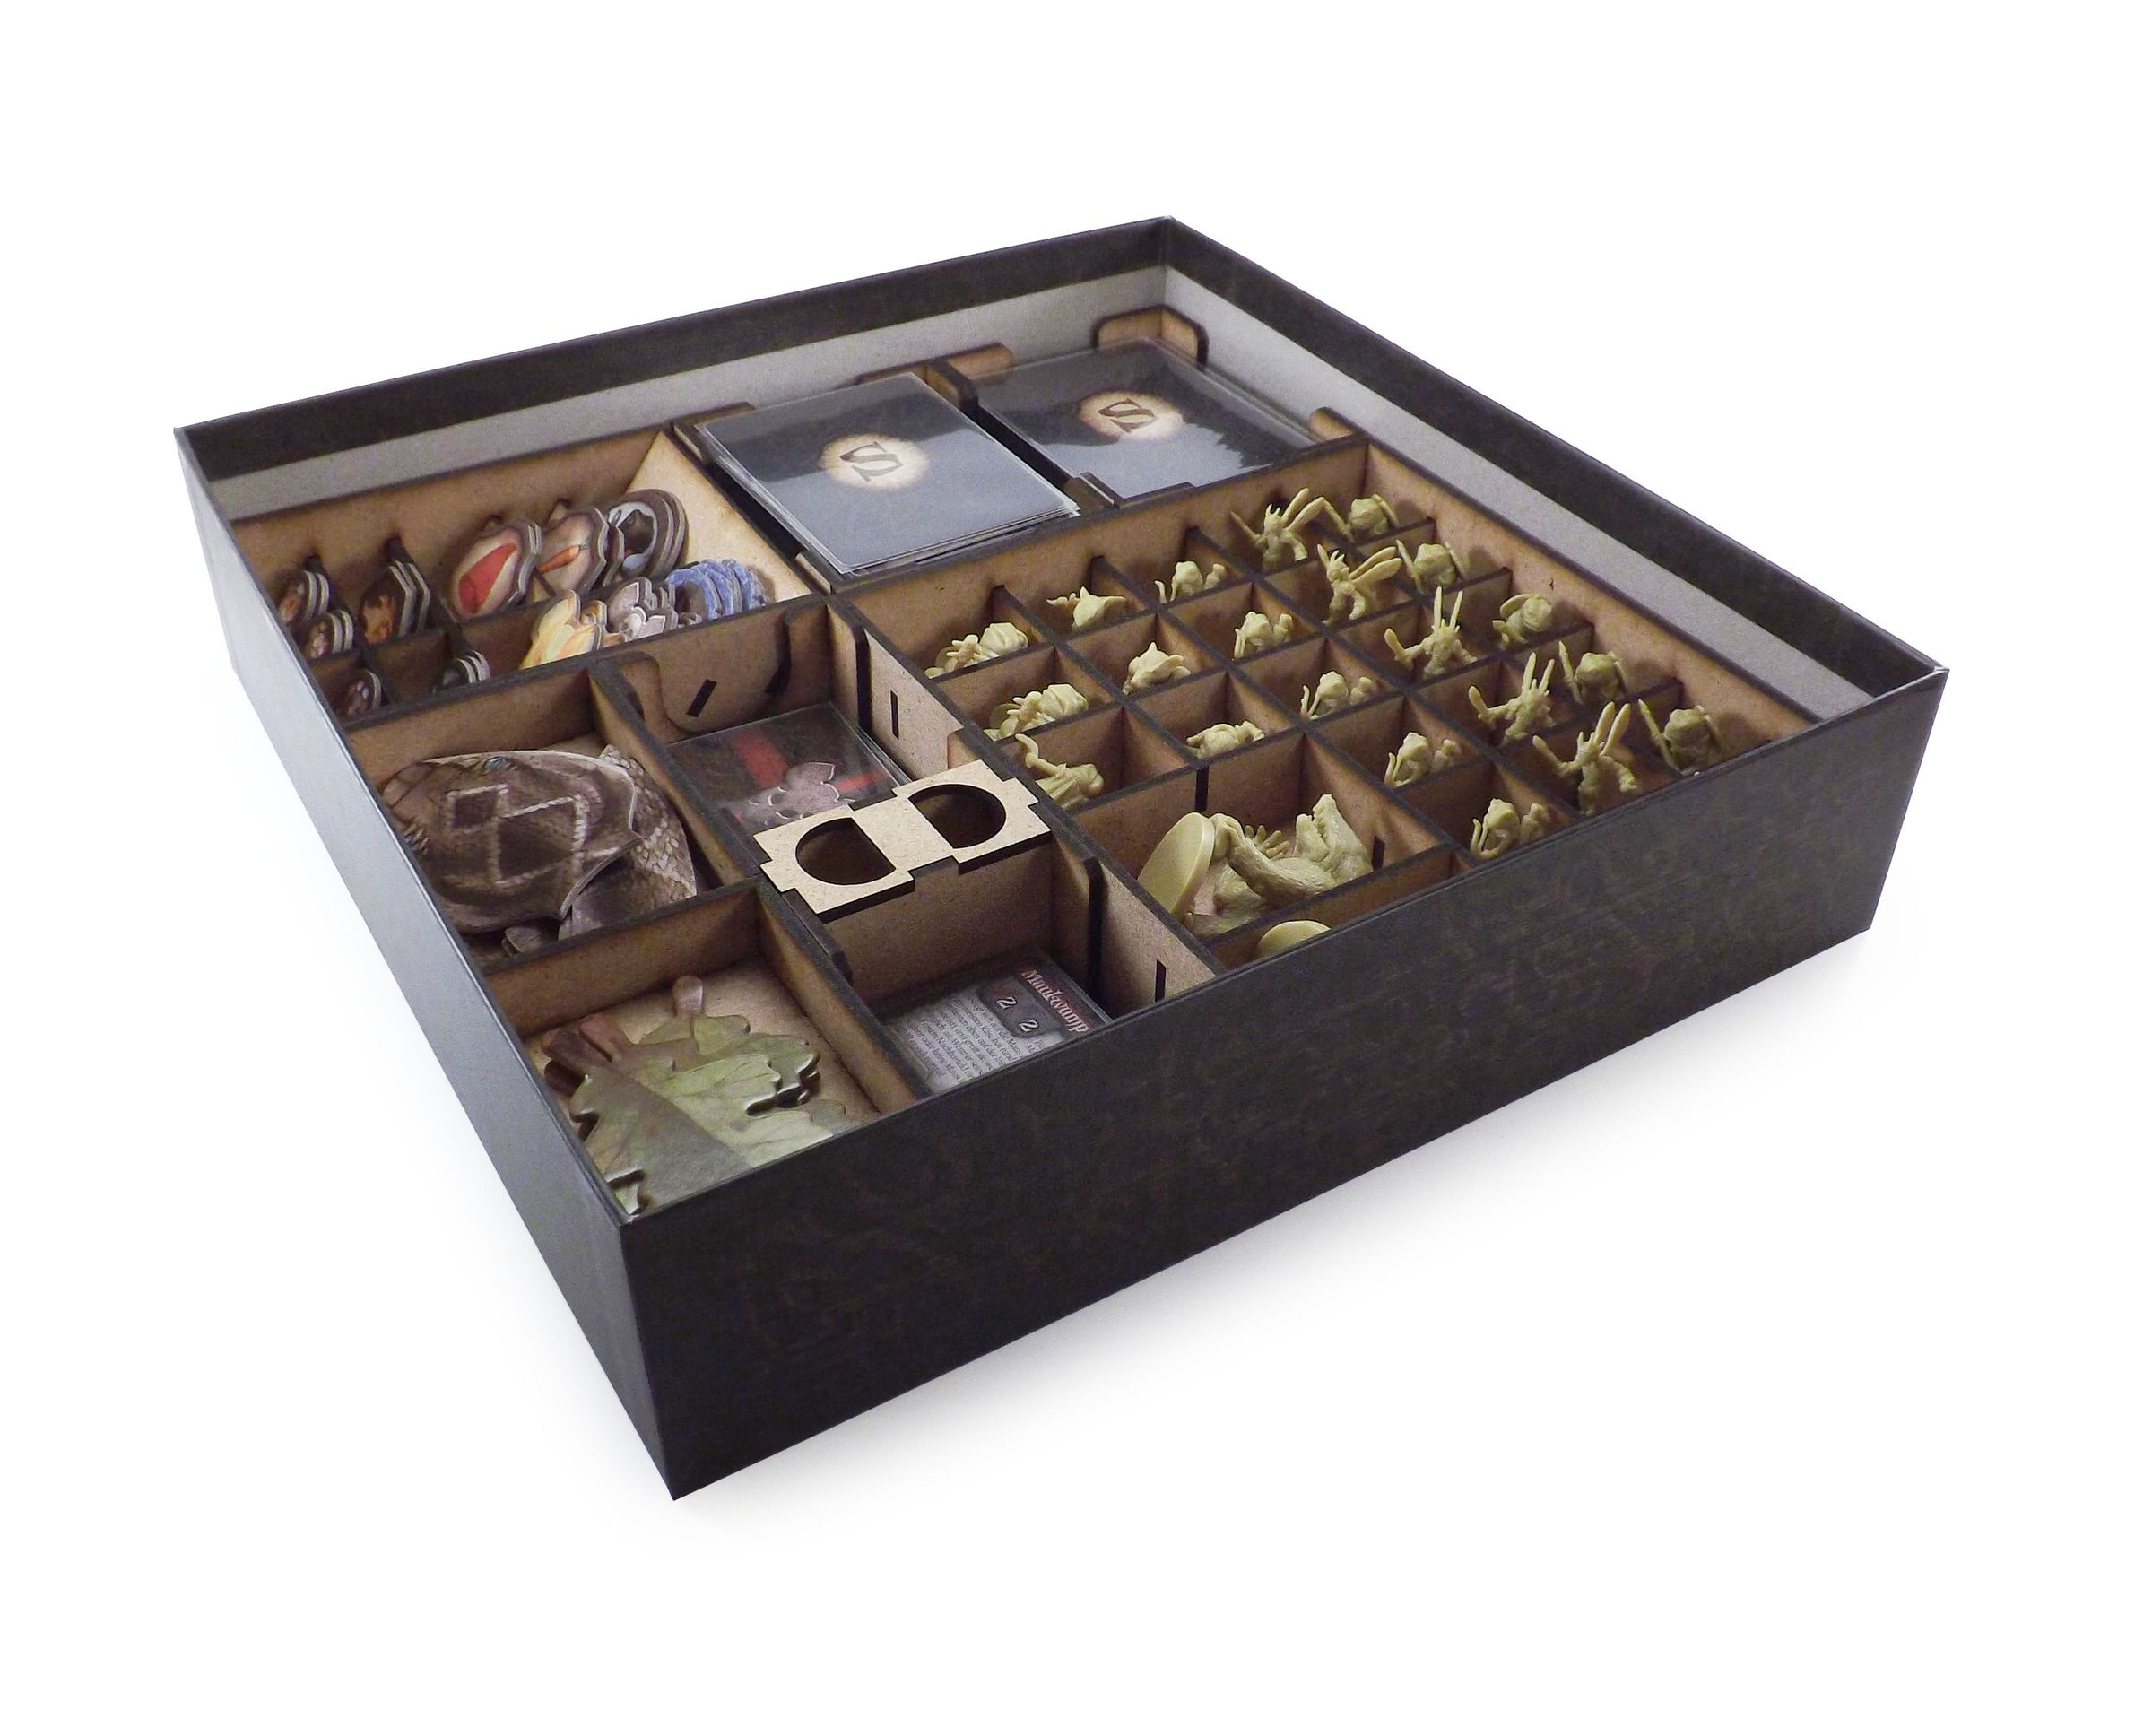 Boardgame Organizer for Mice and Mystics - Downwood Tales